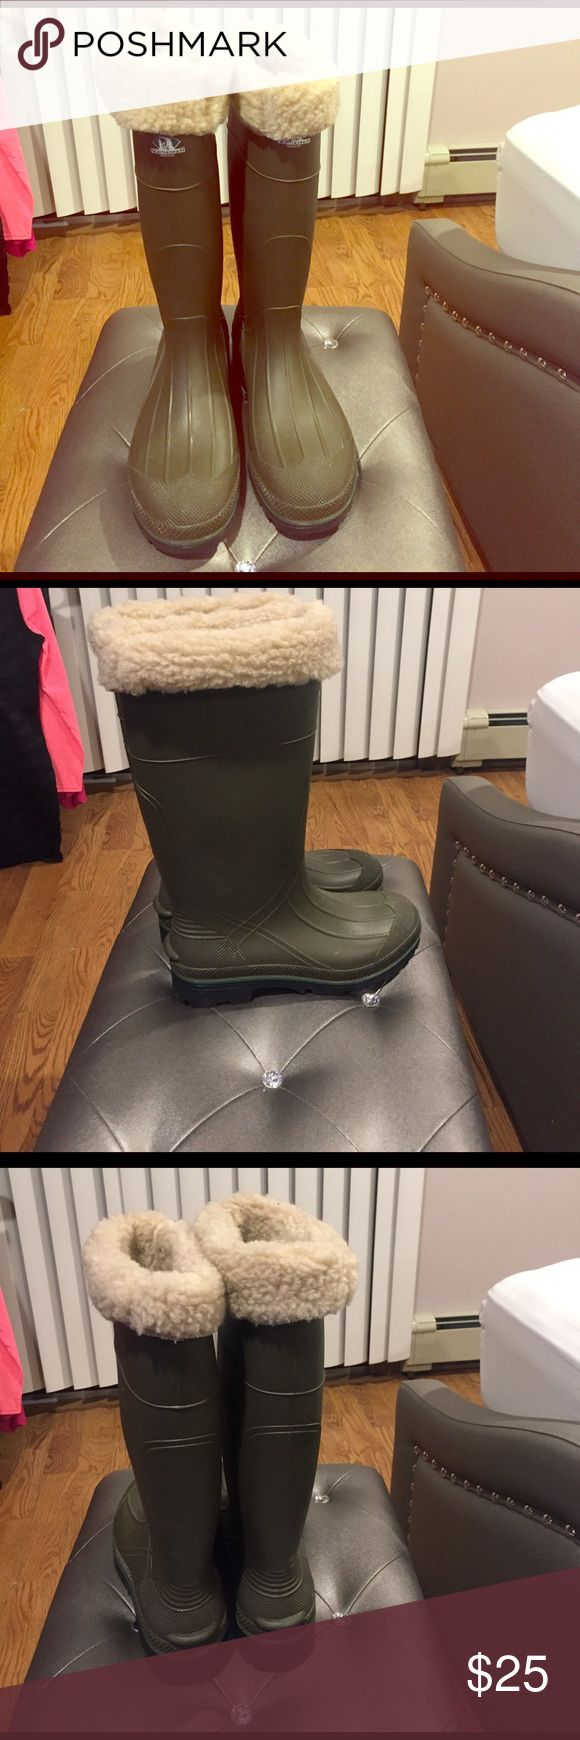 Northerner boots, rain/snow boots Olive green color, with wool inserts for extra warmth and dr scholl's padding inserts . Very heavy sturdy warm boots, used once northerner Shoes Winter & Rain Boots